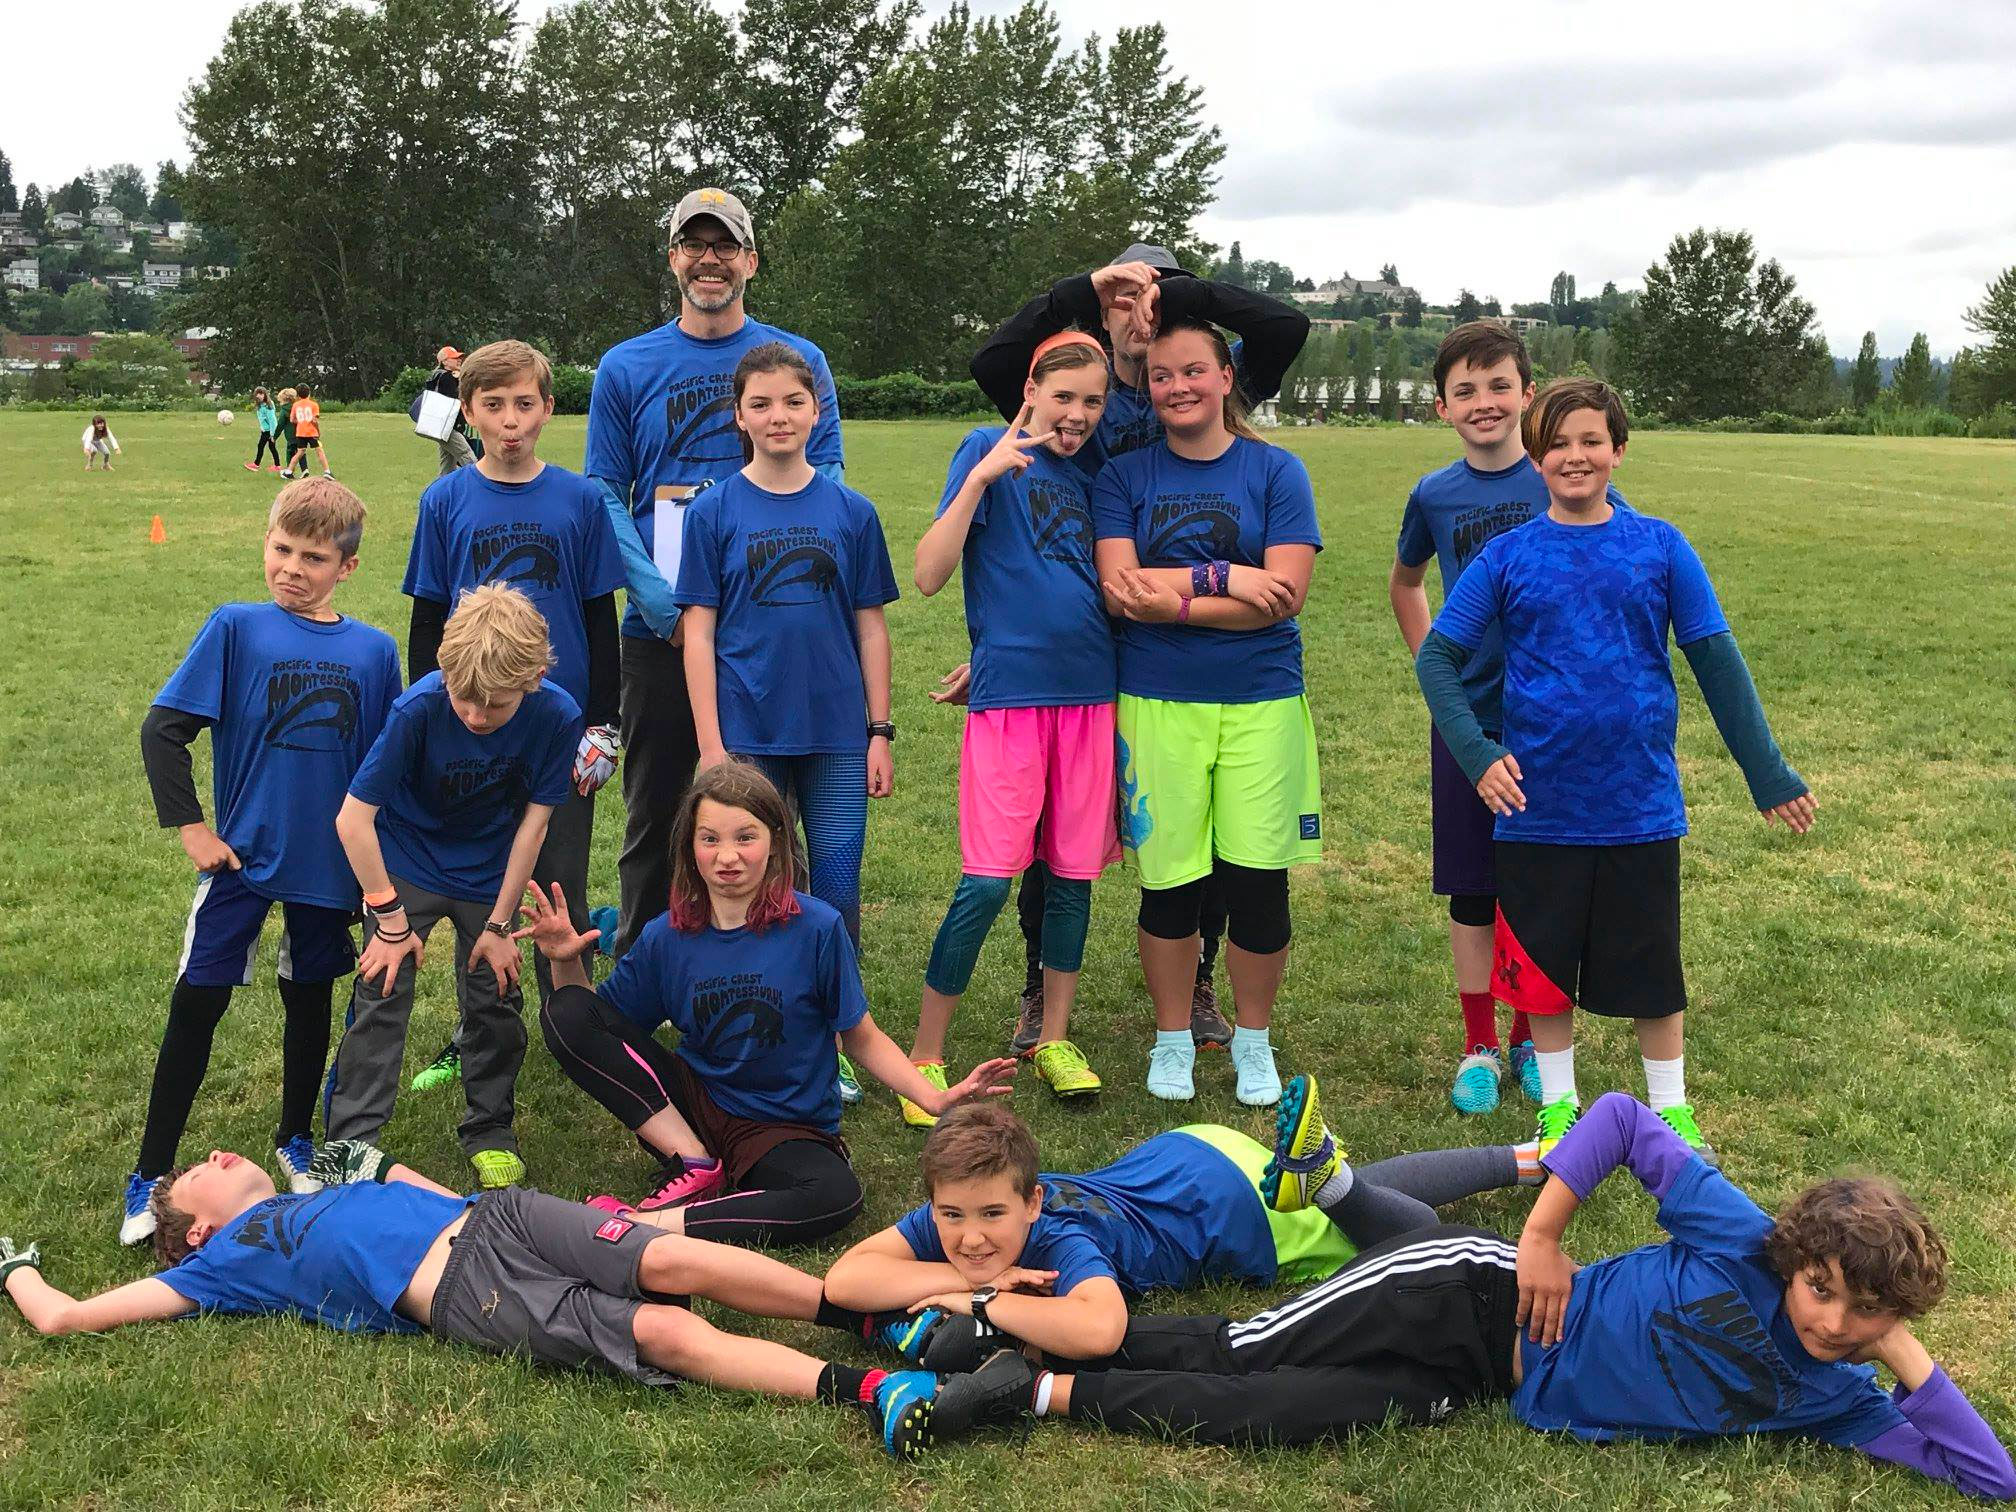 PCS Elementary School Ultimate - Pacific Crest runs casual practices and scrimmages in the fall with a season and end of season tournament (Spring Jam) in the spring.